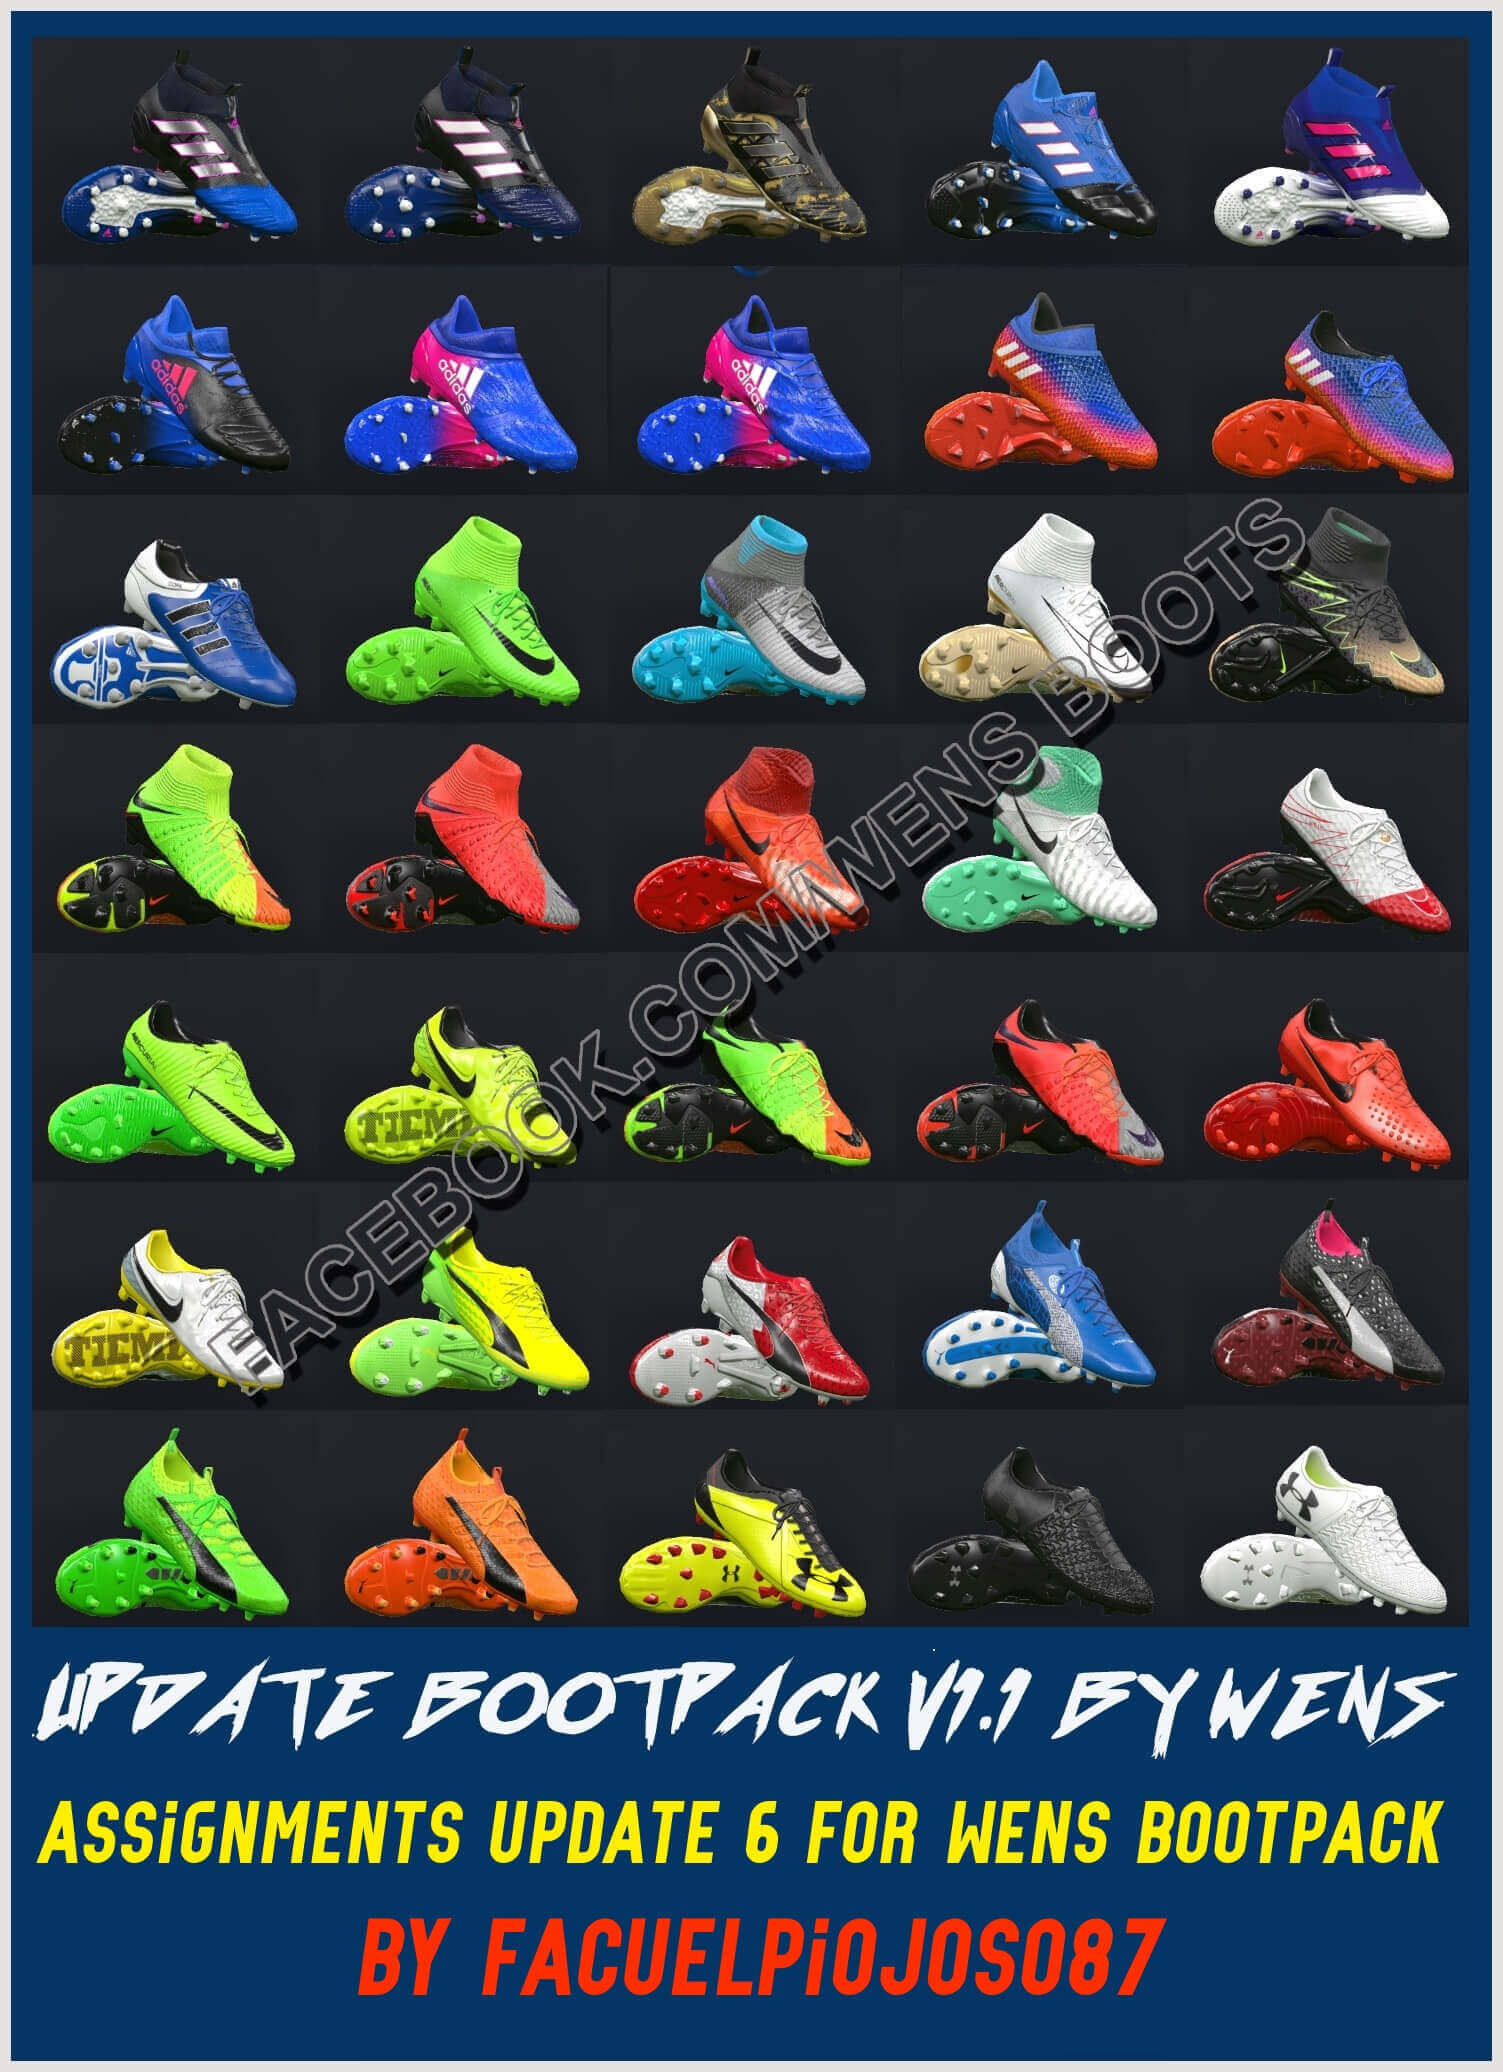 Boots Assignments for WENS Bootpack v1.1